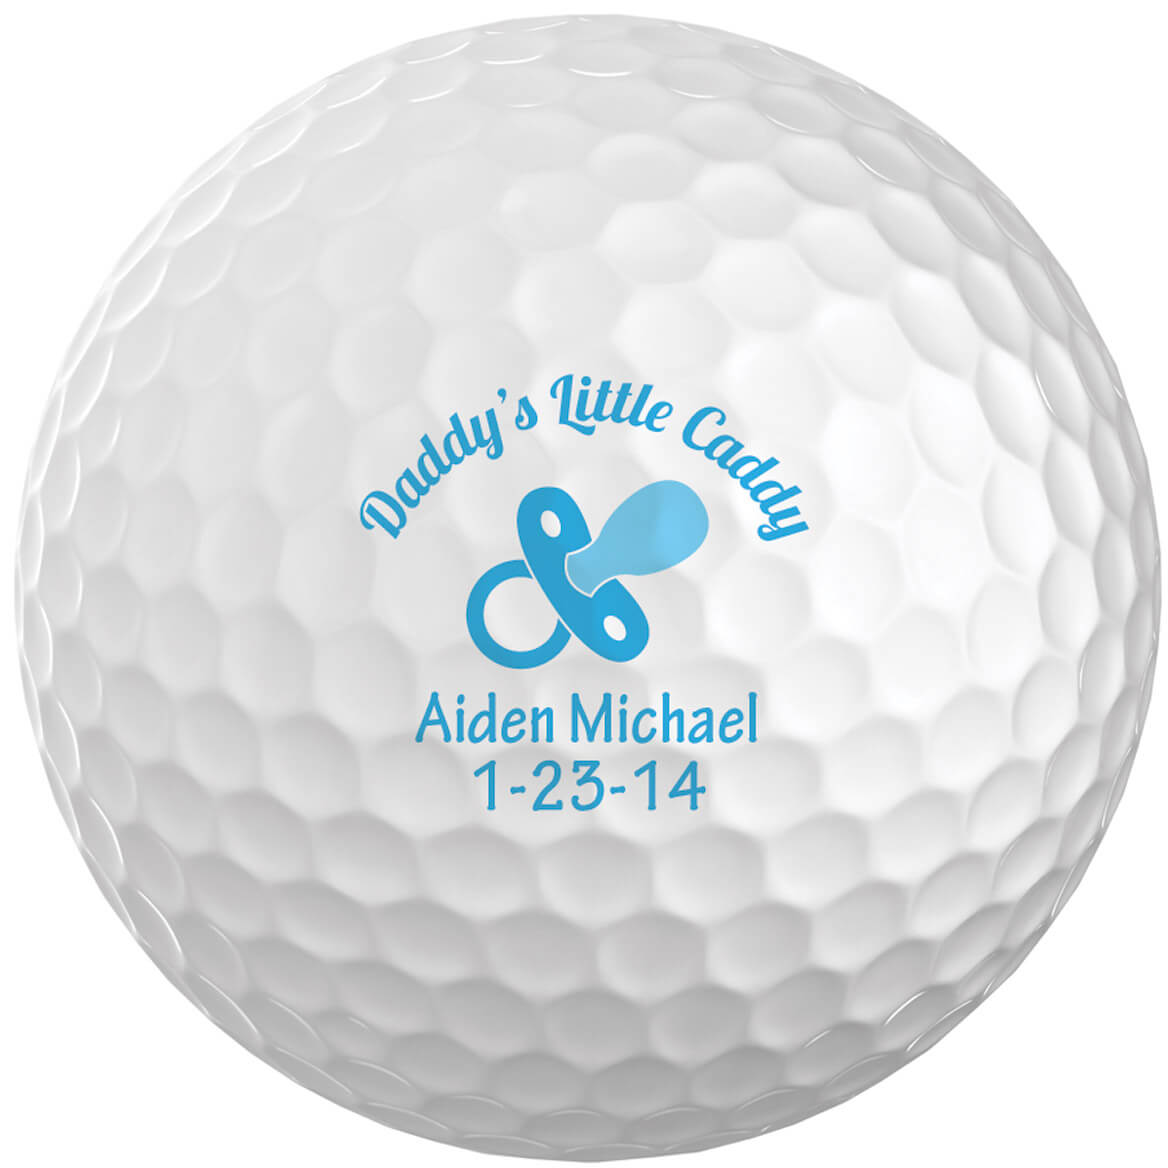 Personalized Daddy's Little Caddy Golf Balls, Set of 6